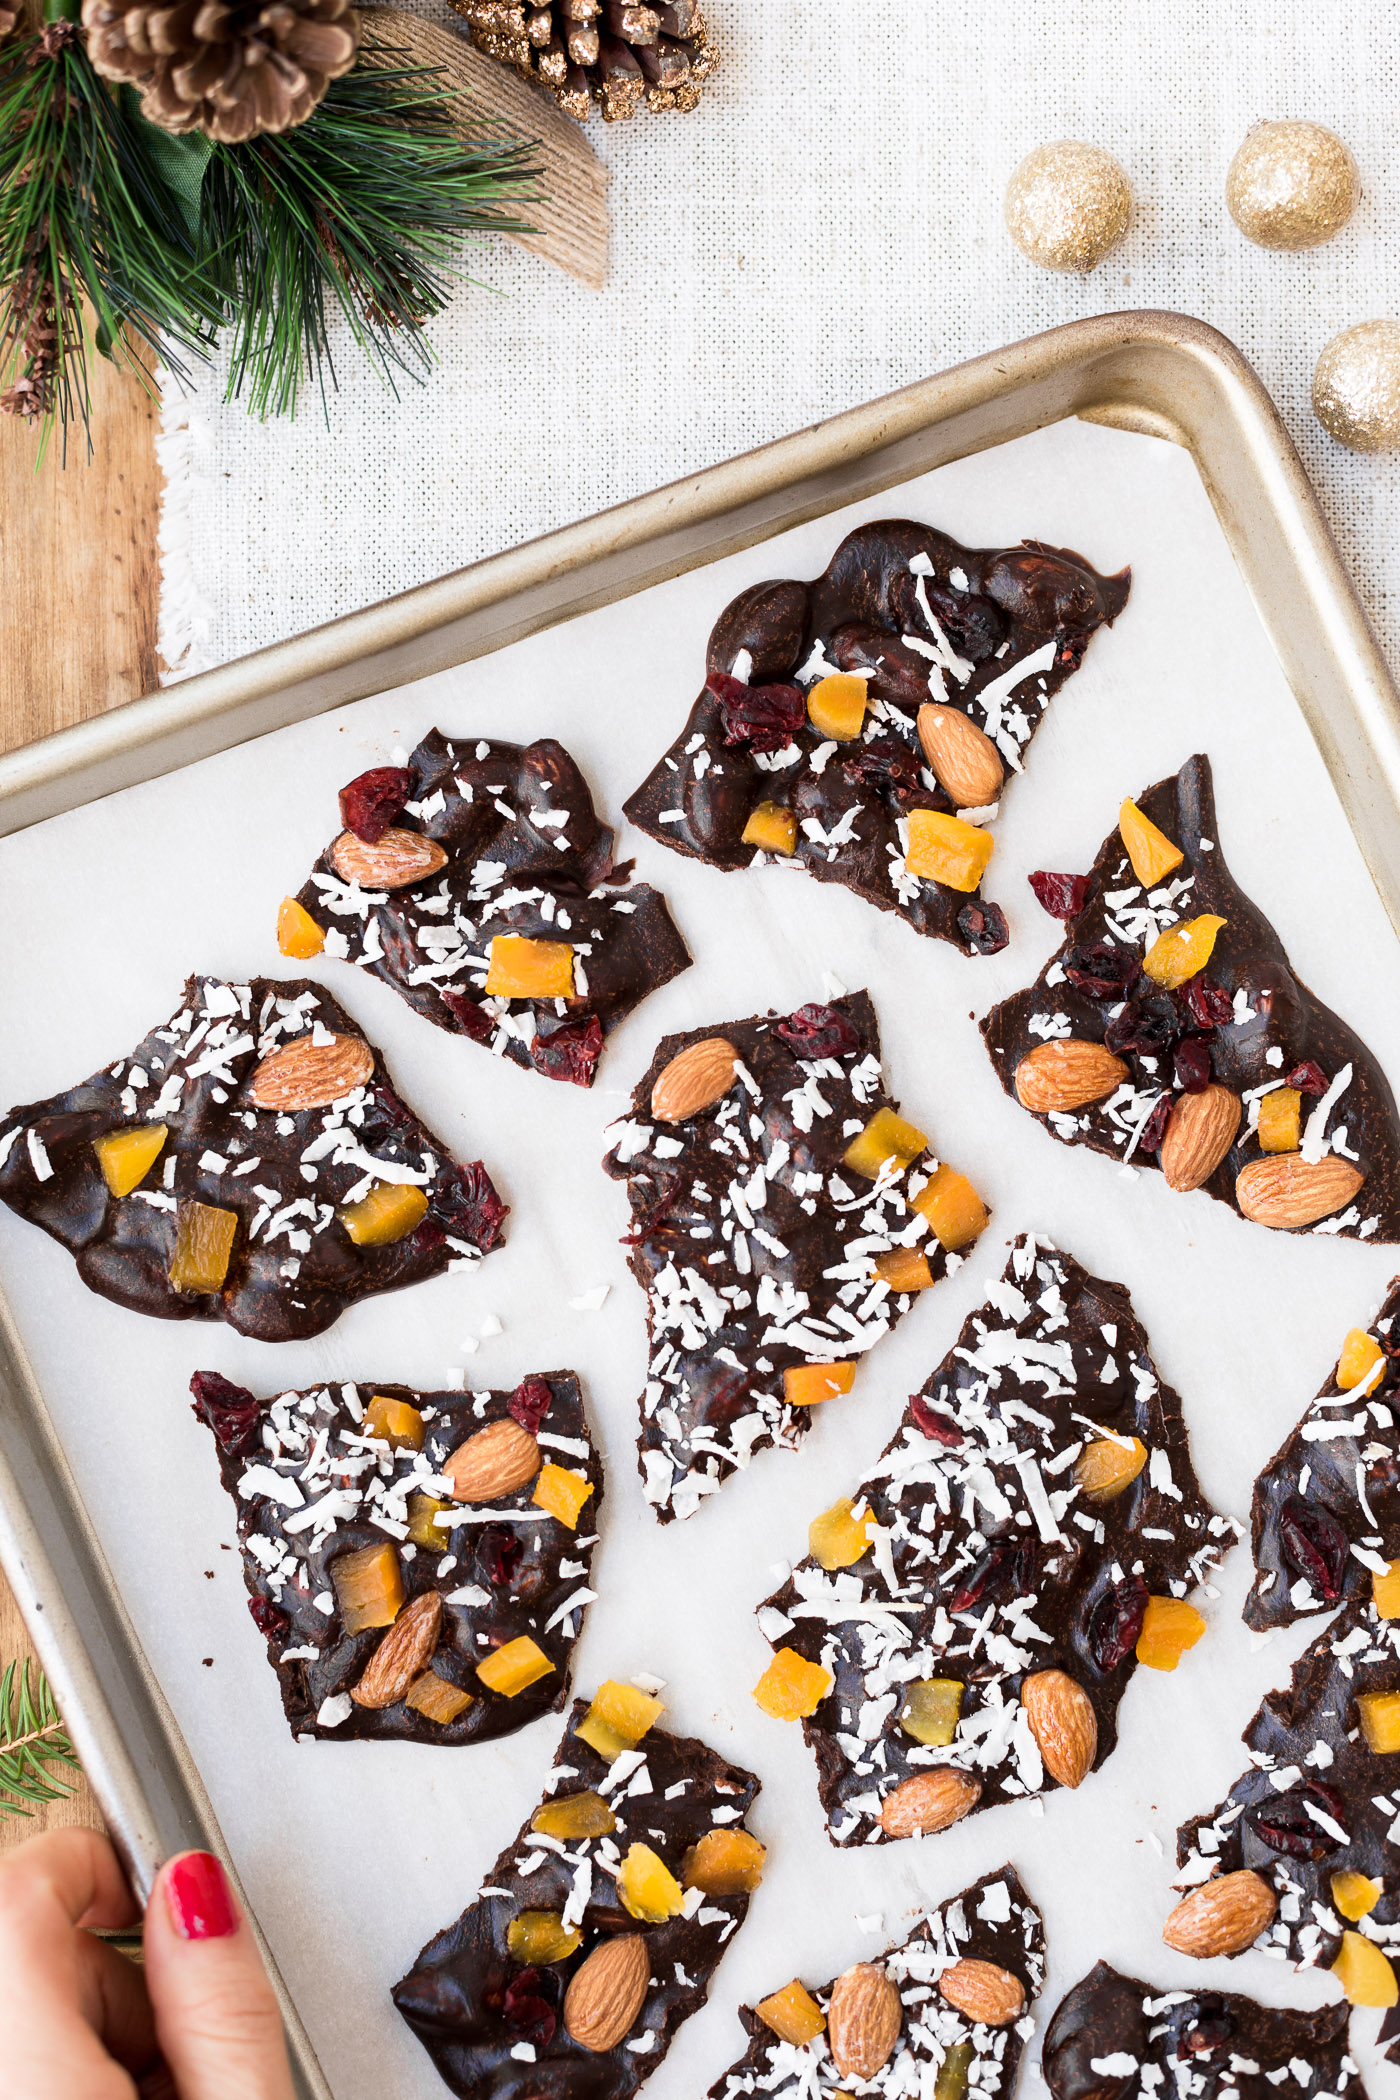 Foolproof Living's Best Chocolate Recipes For The Holiday Season: A Whole Chocolate Almond Bark cut into small shards and photographed from the top view.